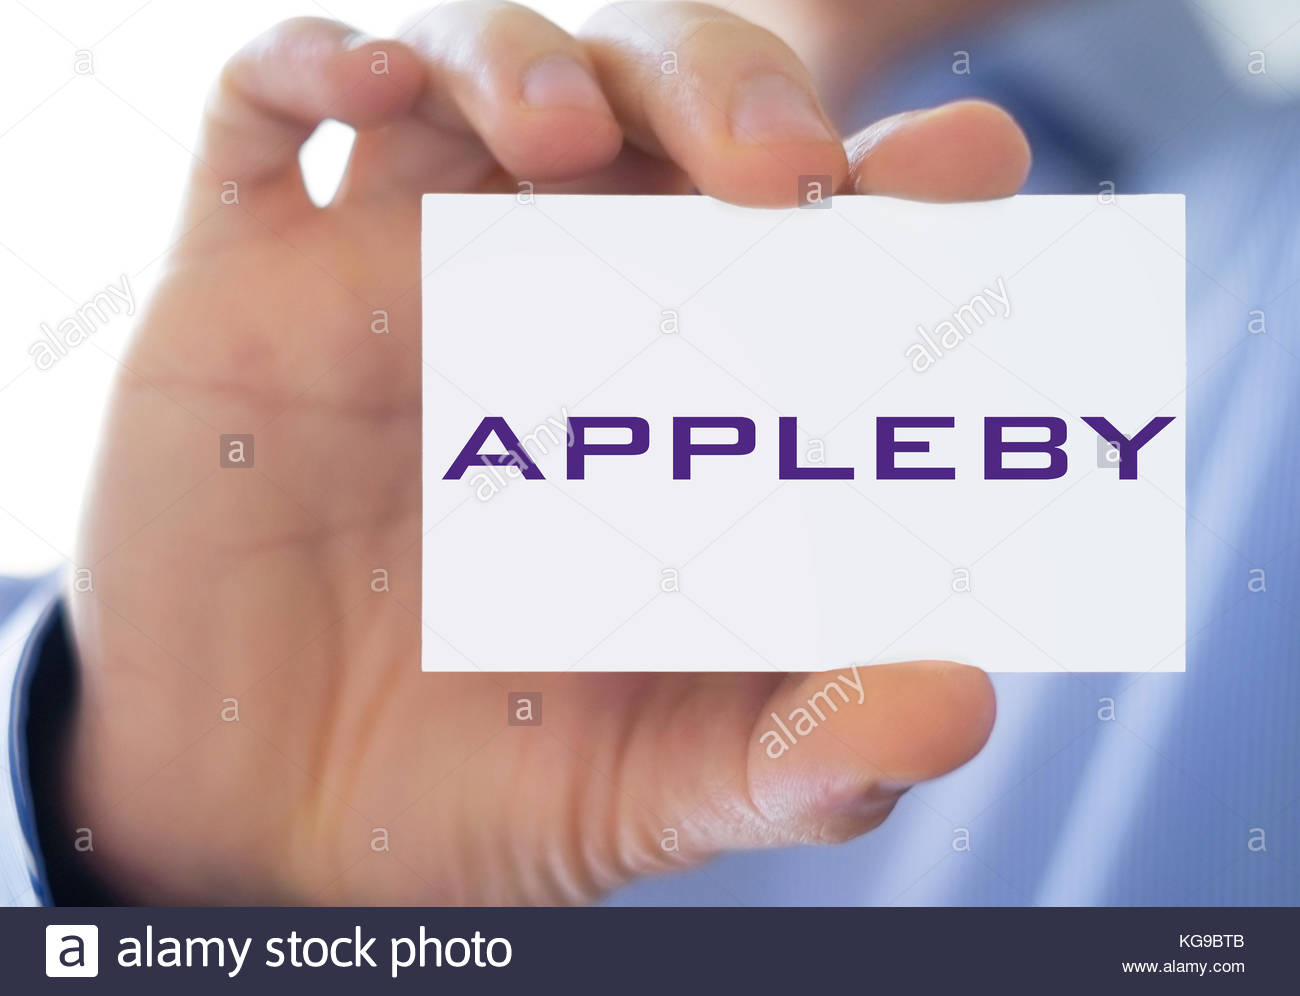 Appleby Paradise Papers icon logo sign - Stock Image